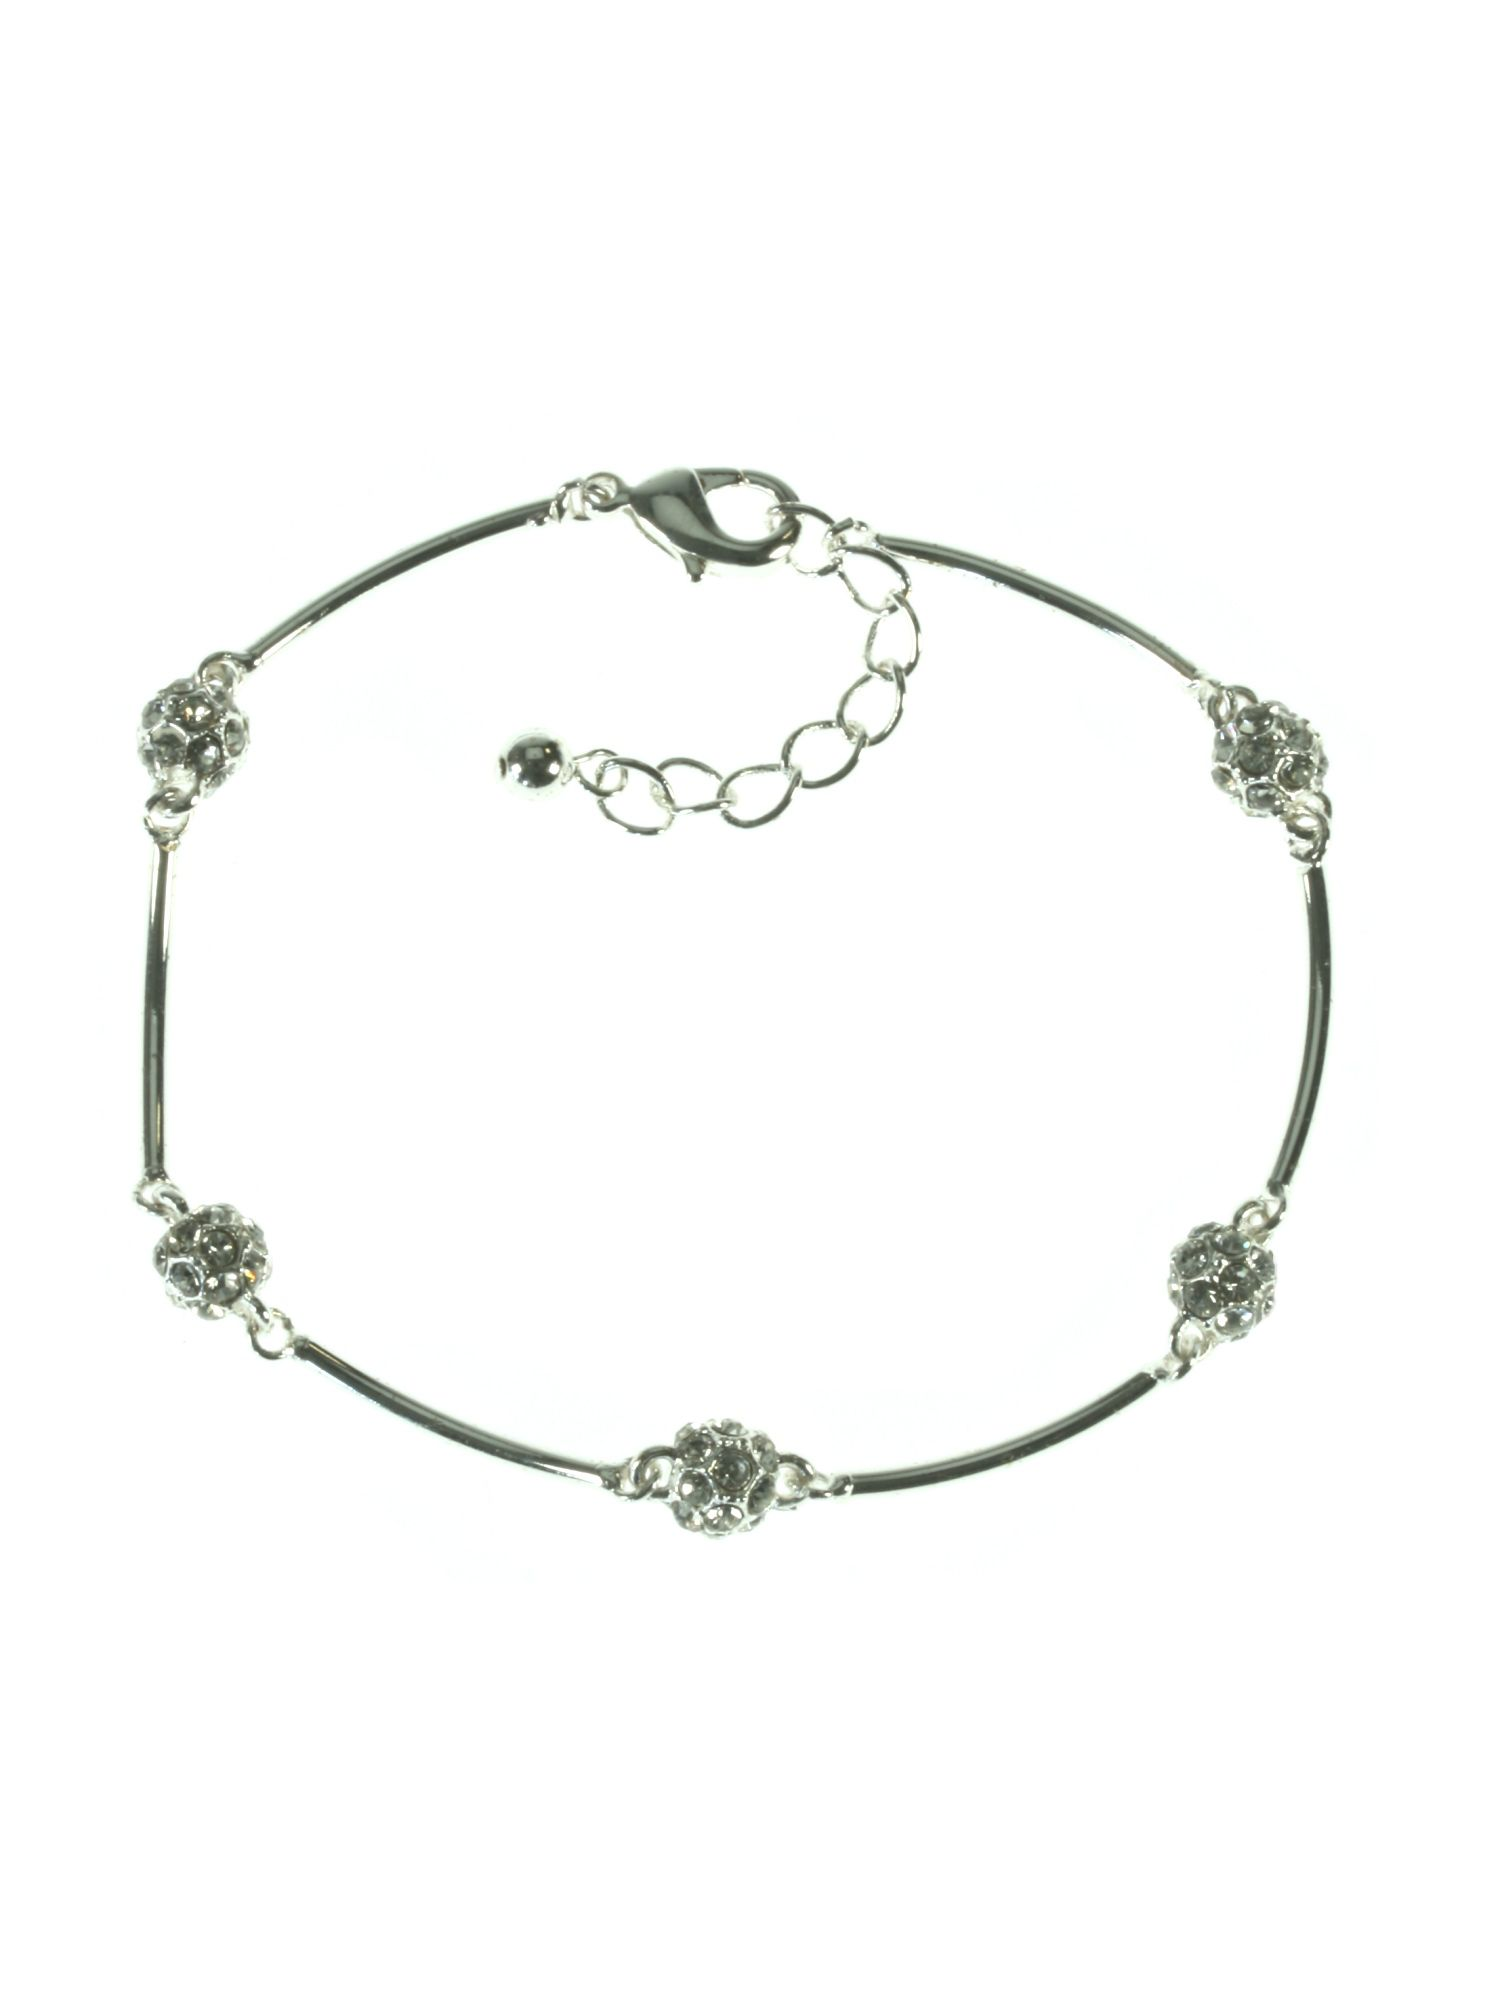 Silver plated bar and fireball bracelet